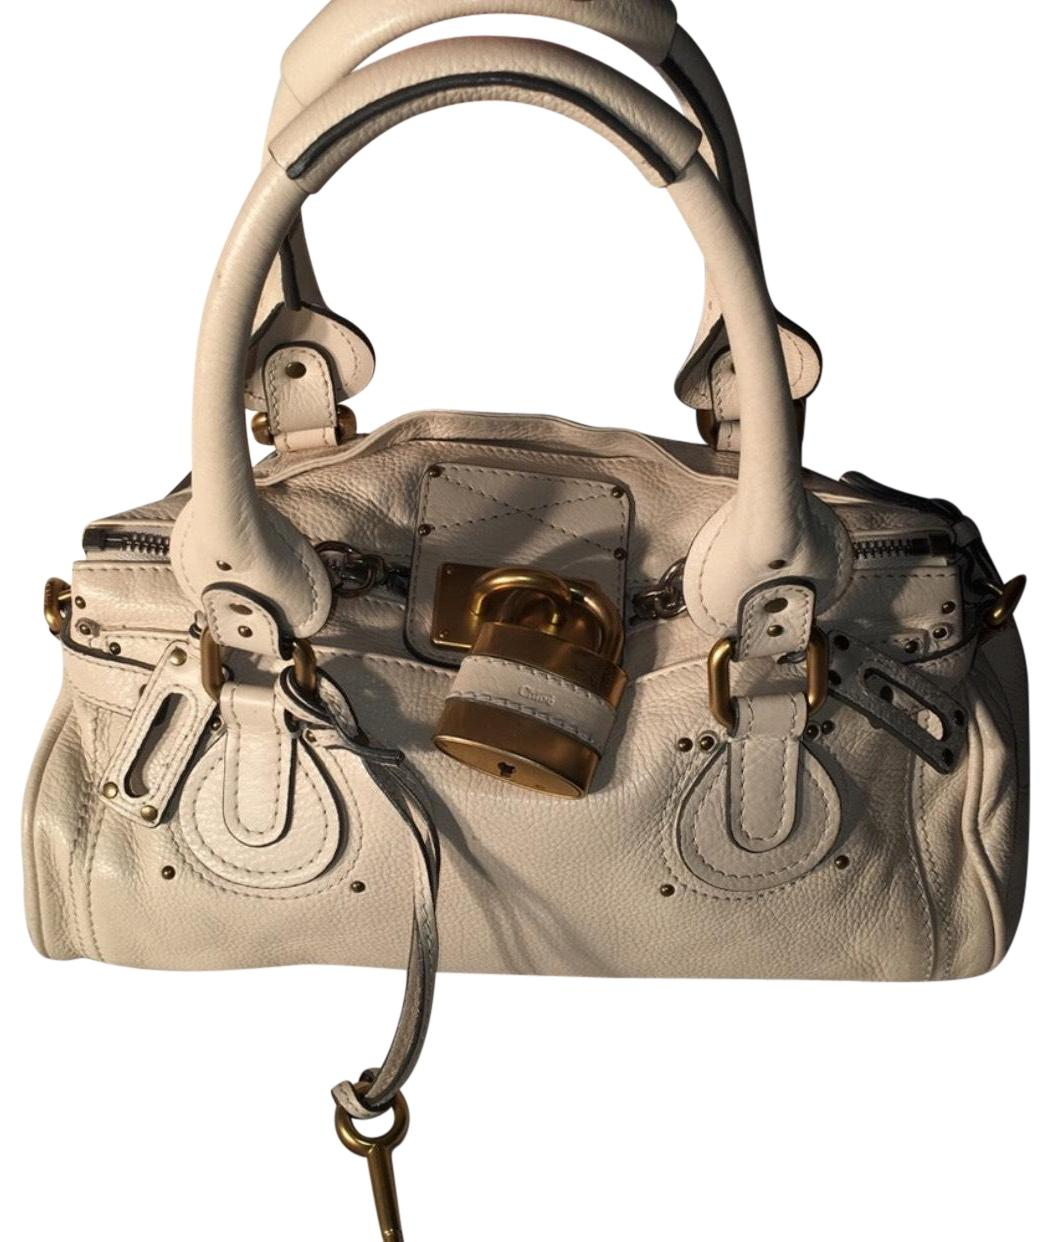 5d535f2ab24 20+ Chloe Christine Handbags Pictures and Ideas on Meta Networks